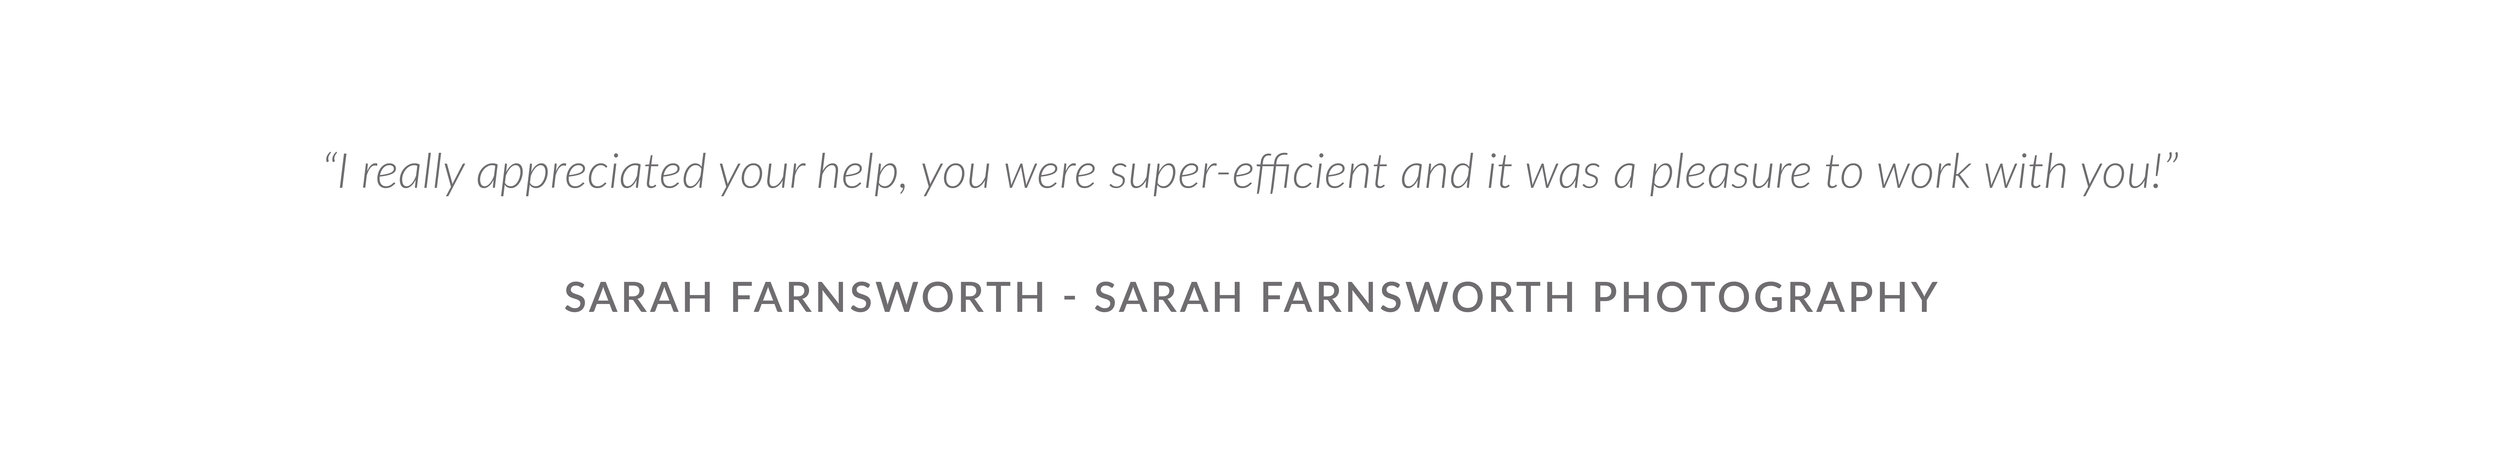 Testimonial - Sarah Farnsworth, Sarah Farnsworth Photography